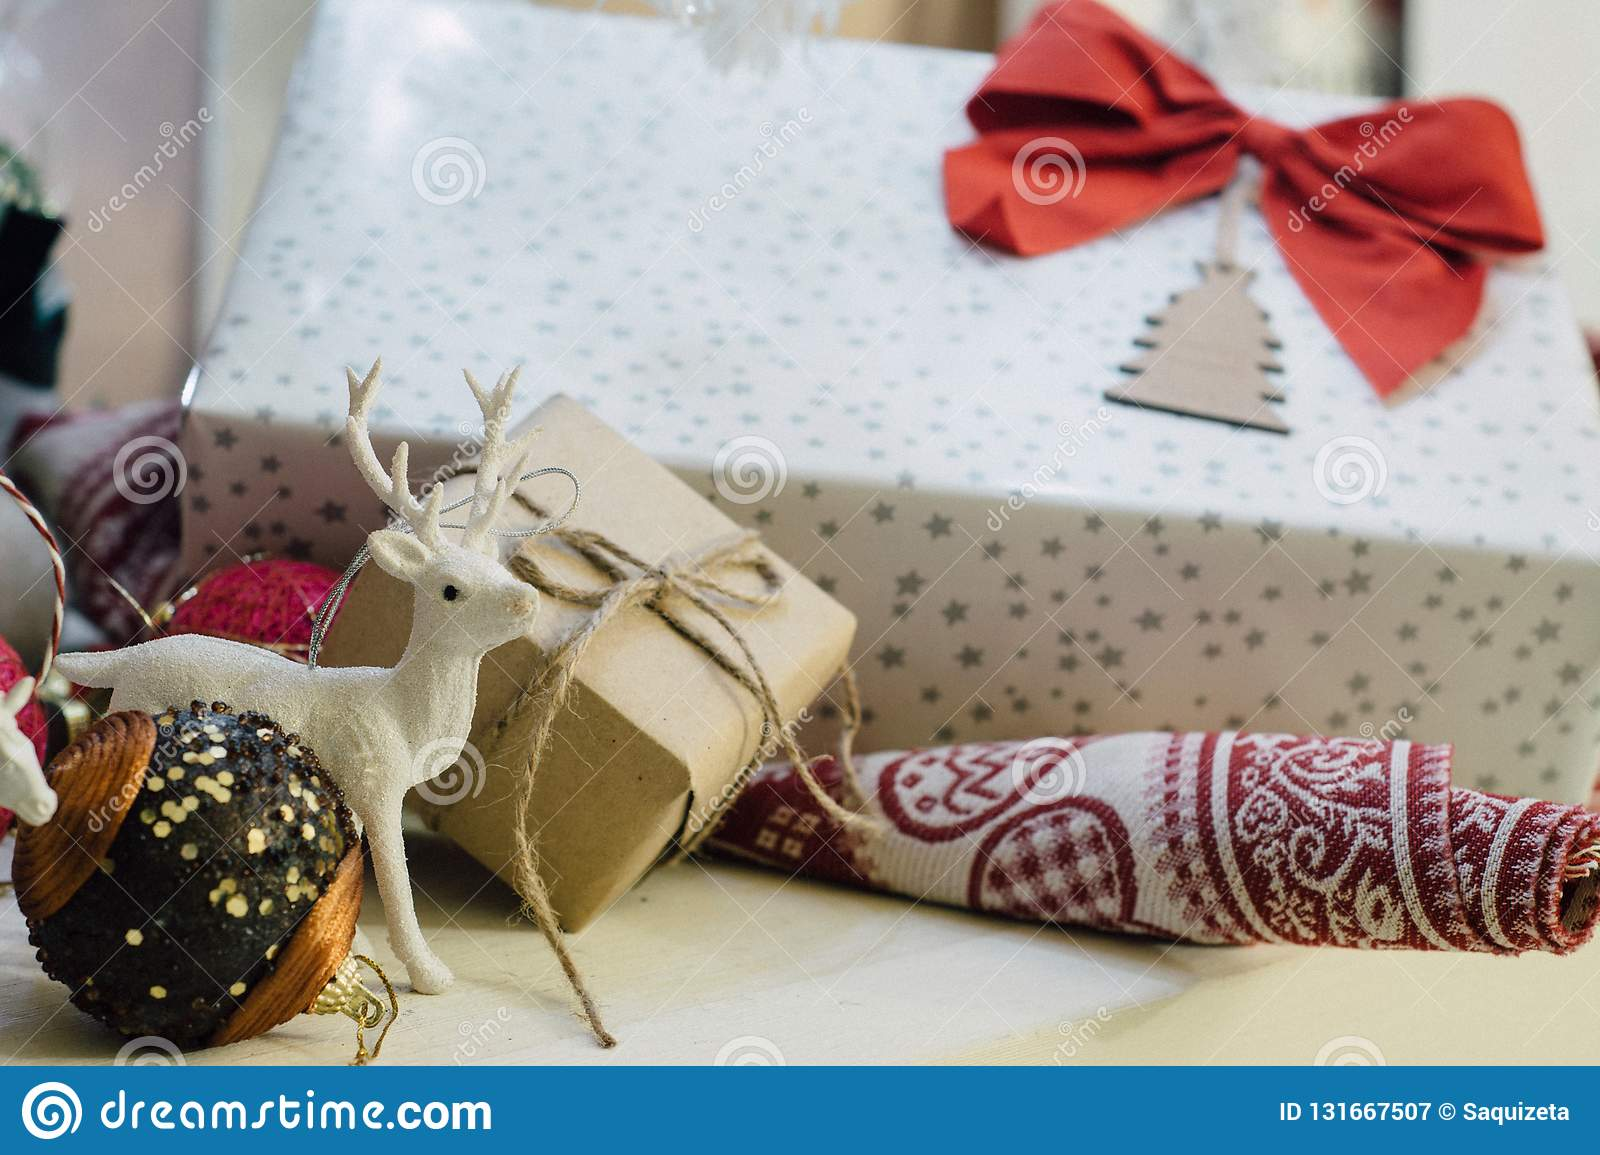 Gift With Red Bow Next To The White Christmas Tree, Shot Of Ornaments Stock Image - Image of ...